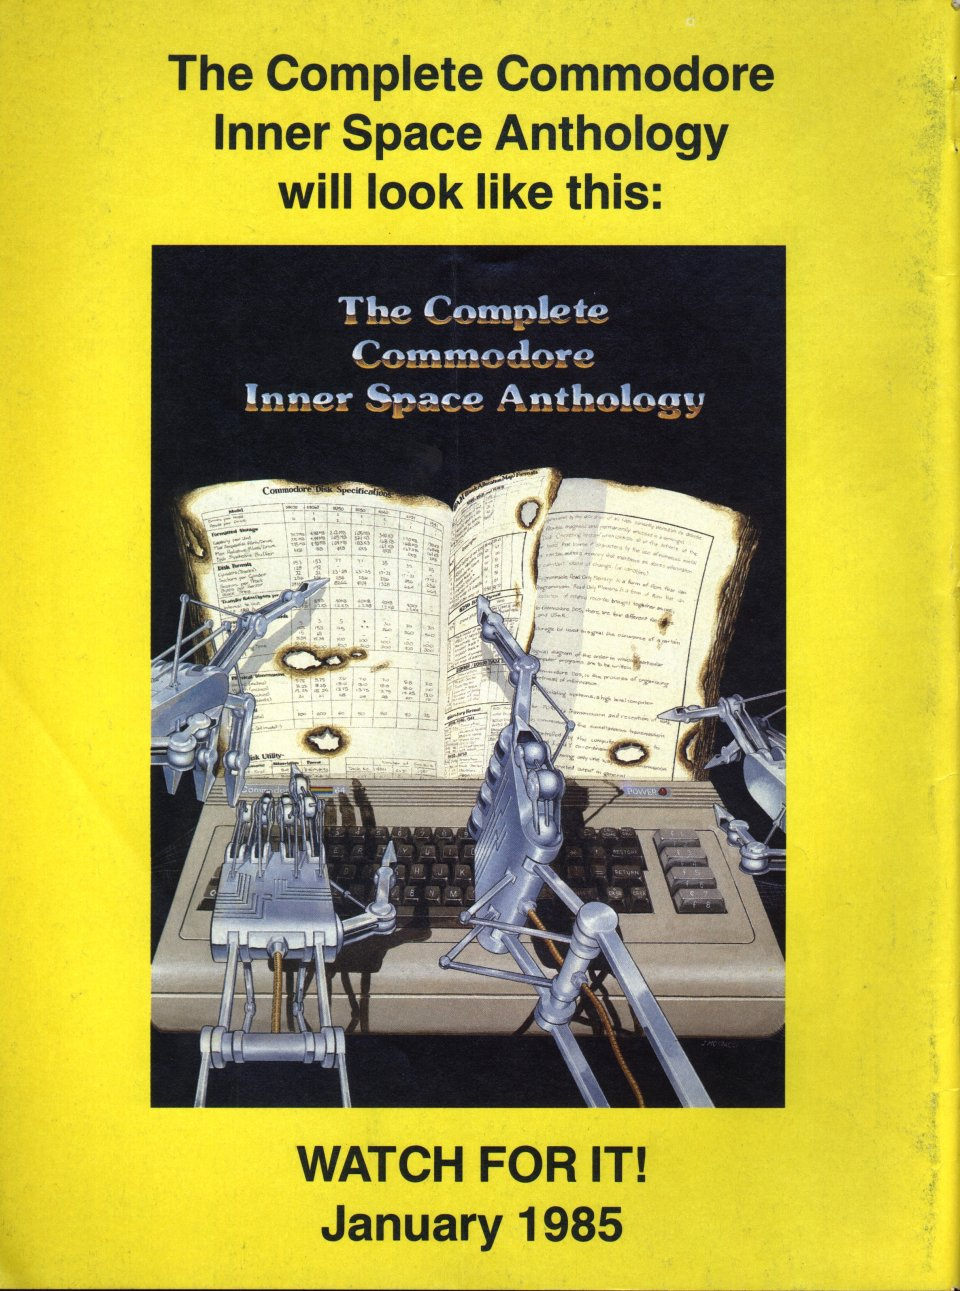 [Advertisement: The Complete Commodore Inner Space Anthology]